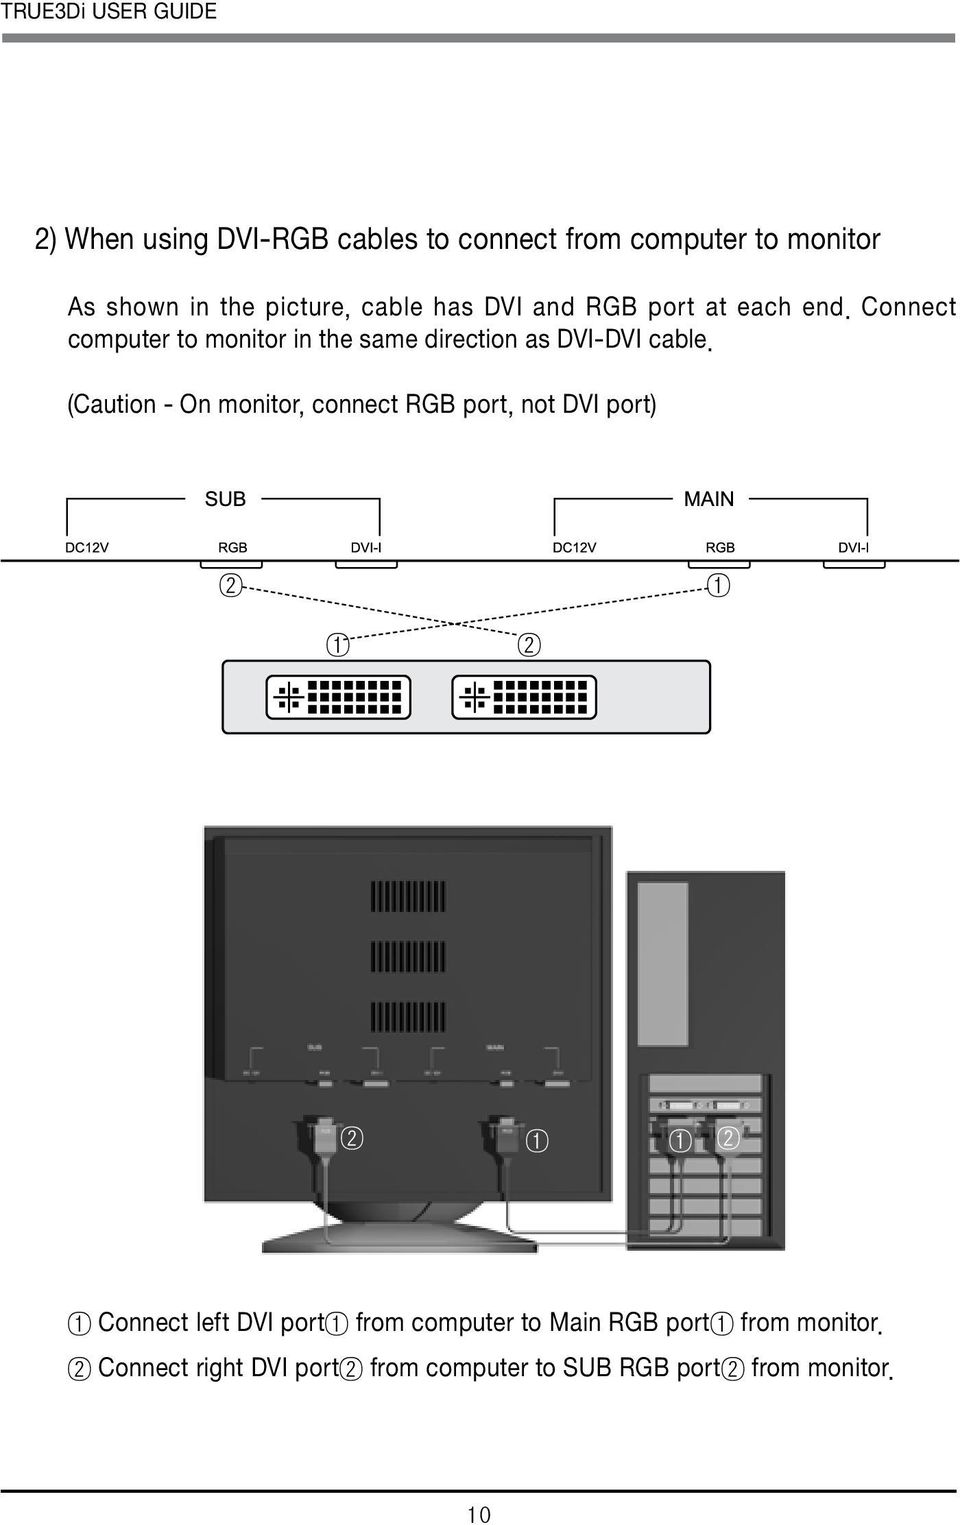 Connect computer to monitor in the same direction as DVI-DVI cable.